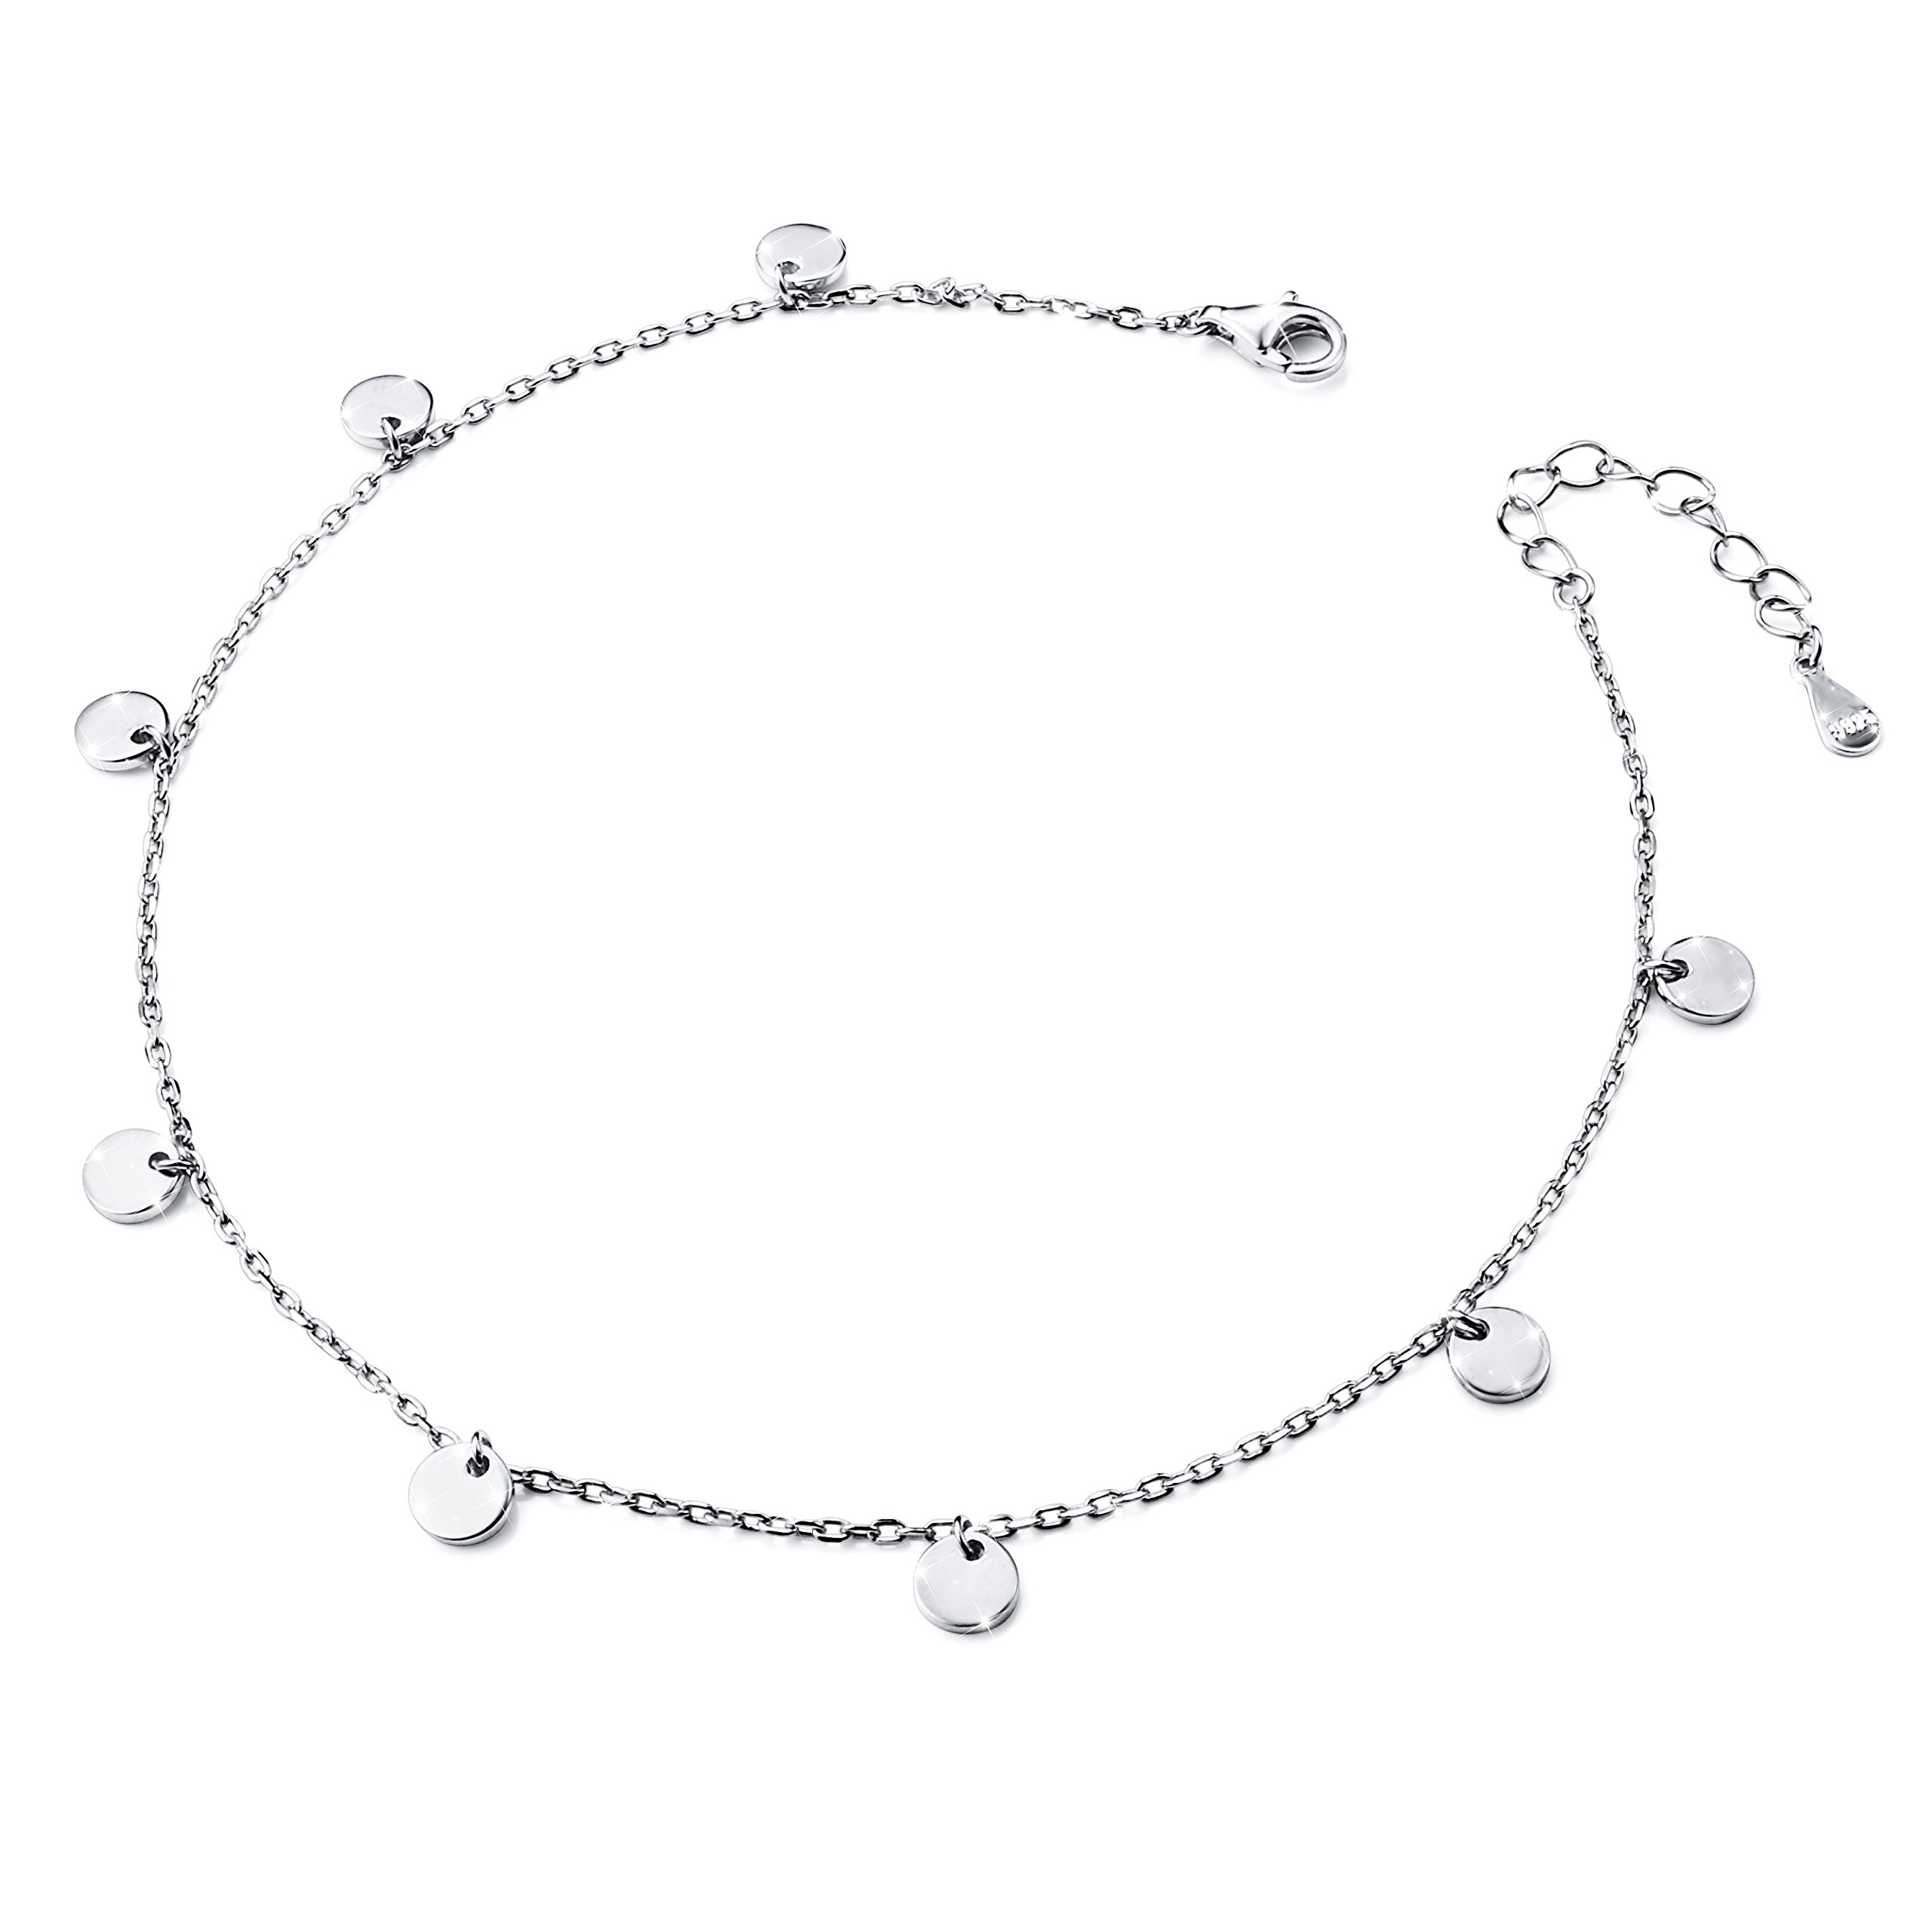 Anklets Adjustable 2mm Black Real Leather Cord Ankle Bracelet Refreshing And Beneficial To The Eyes